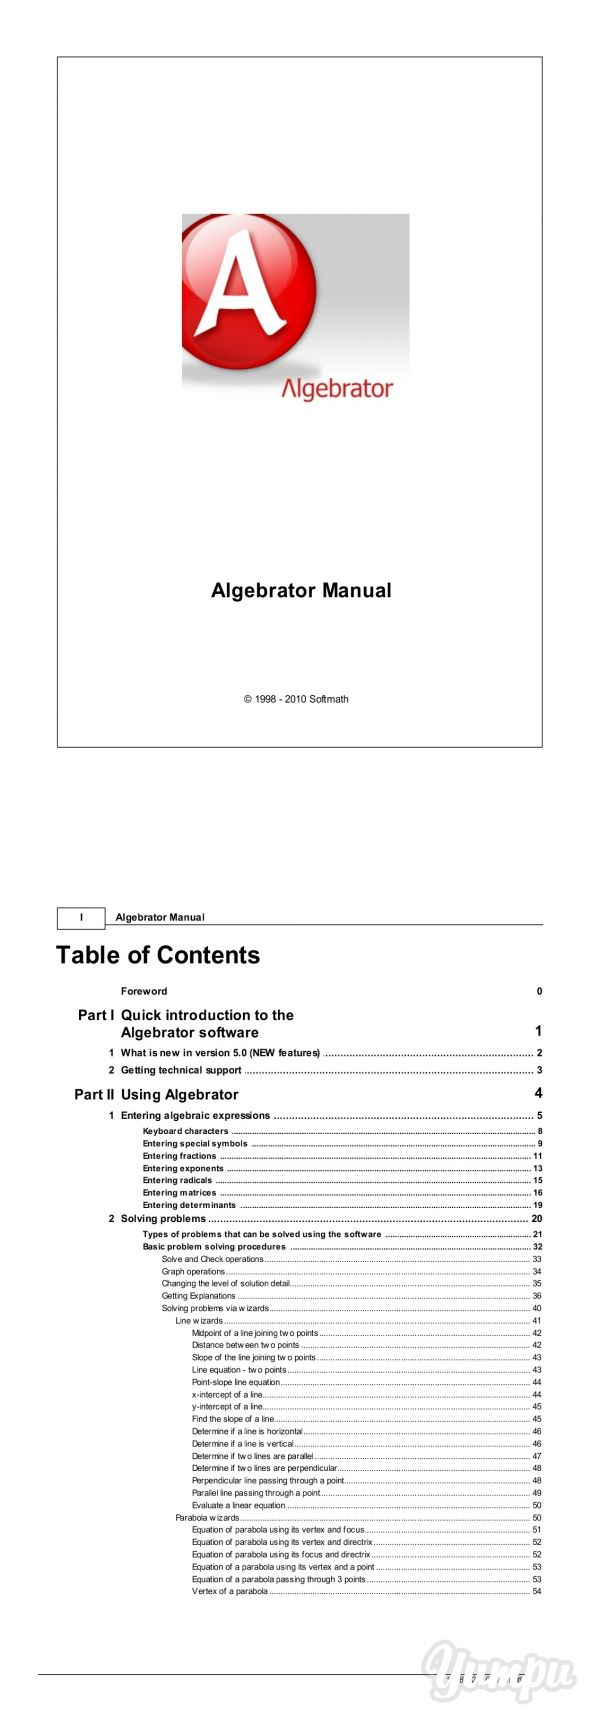 stats solver ideas about algebra solver expression solver ideas about algebra solver expression solver doyourmath com algebrator manual for your algebra problem solver magazine